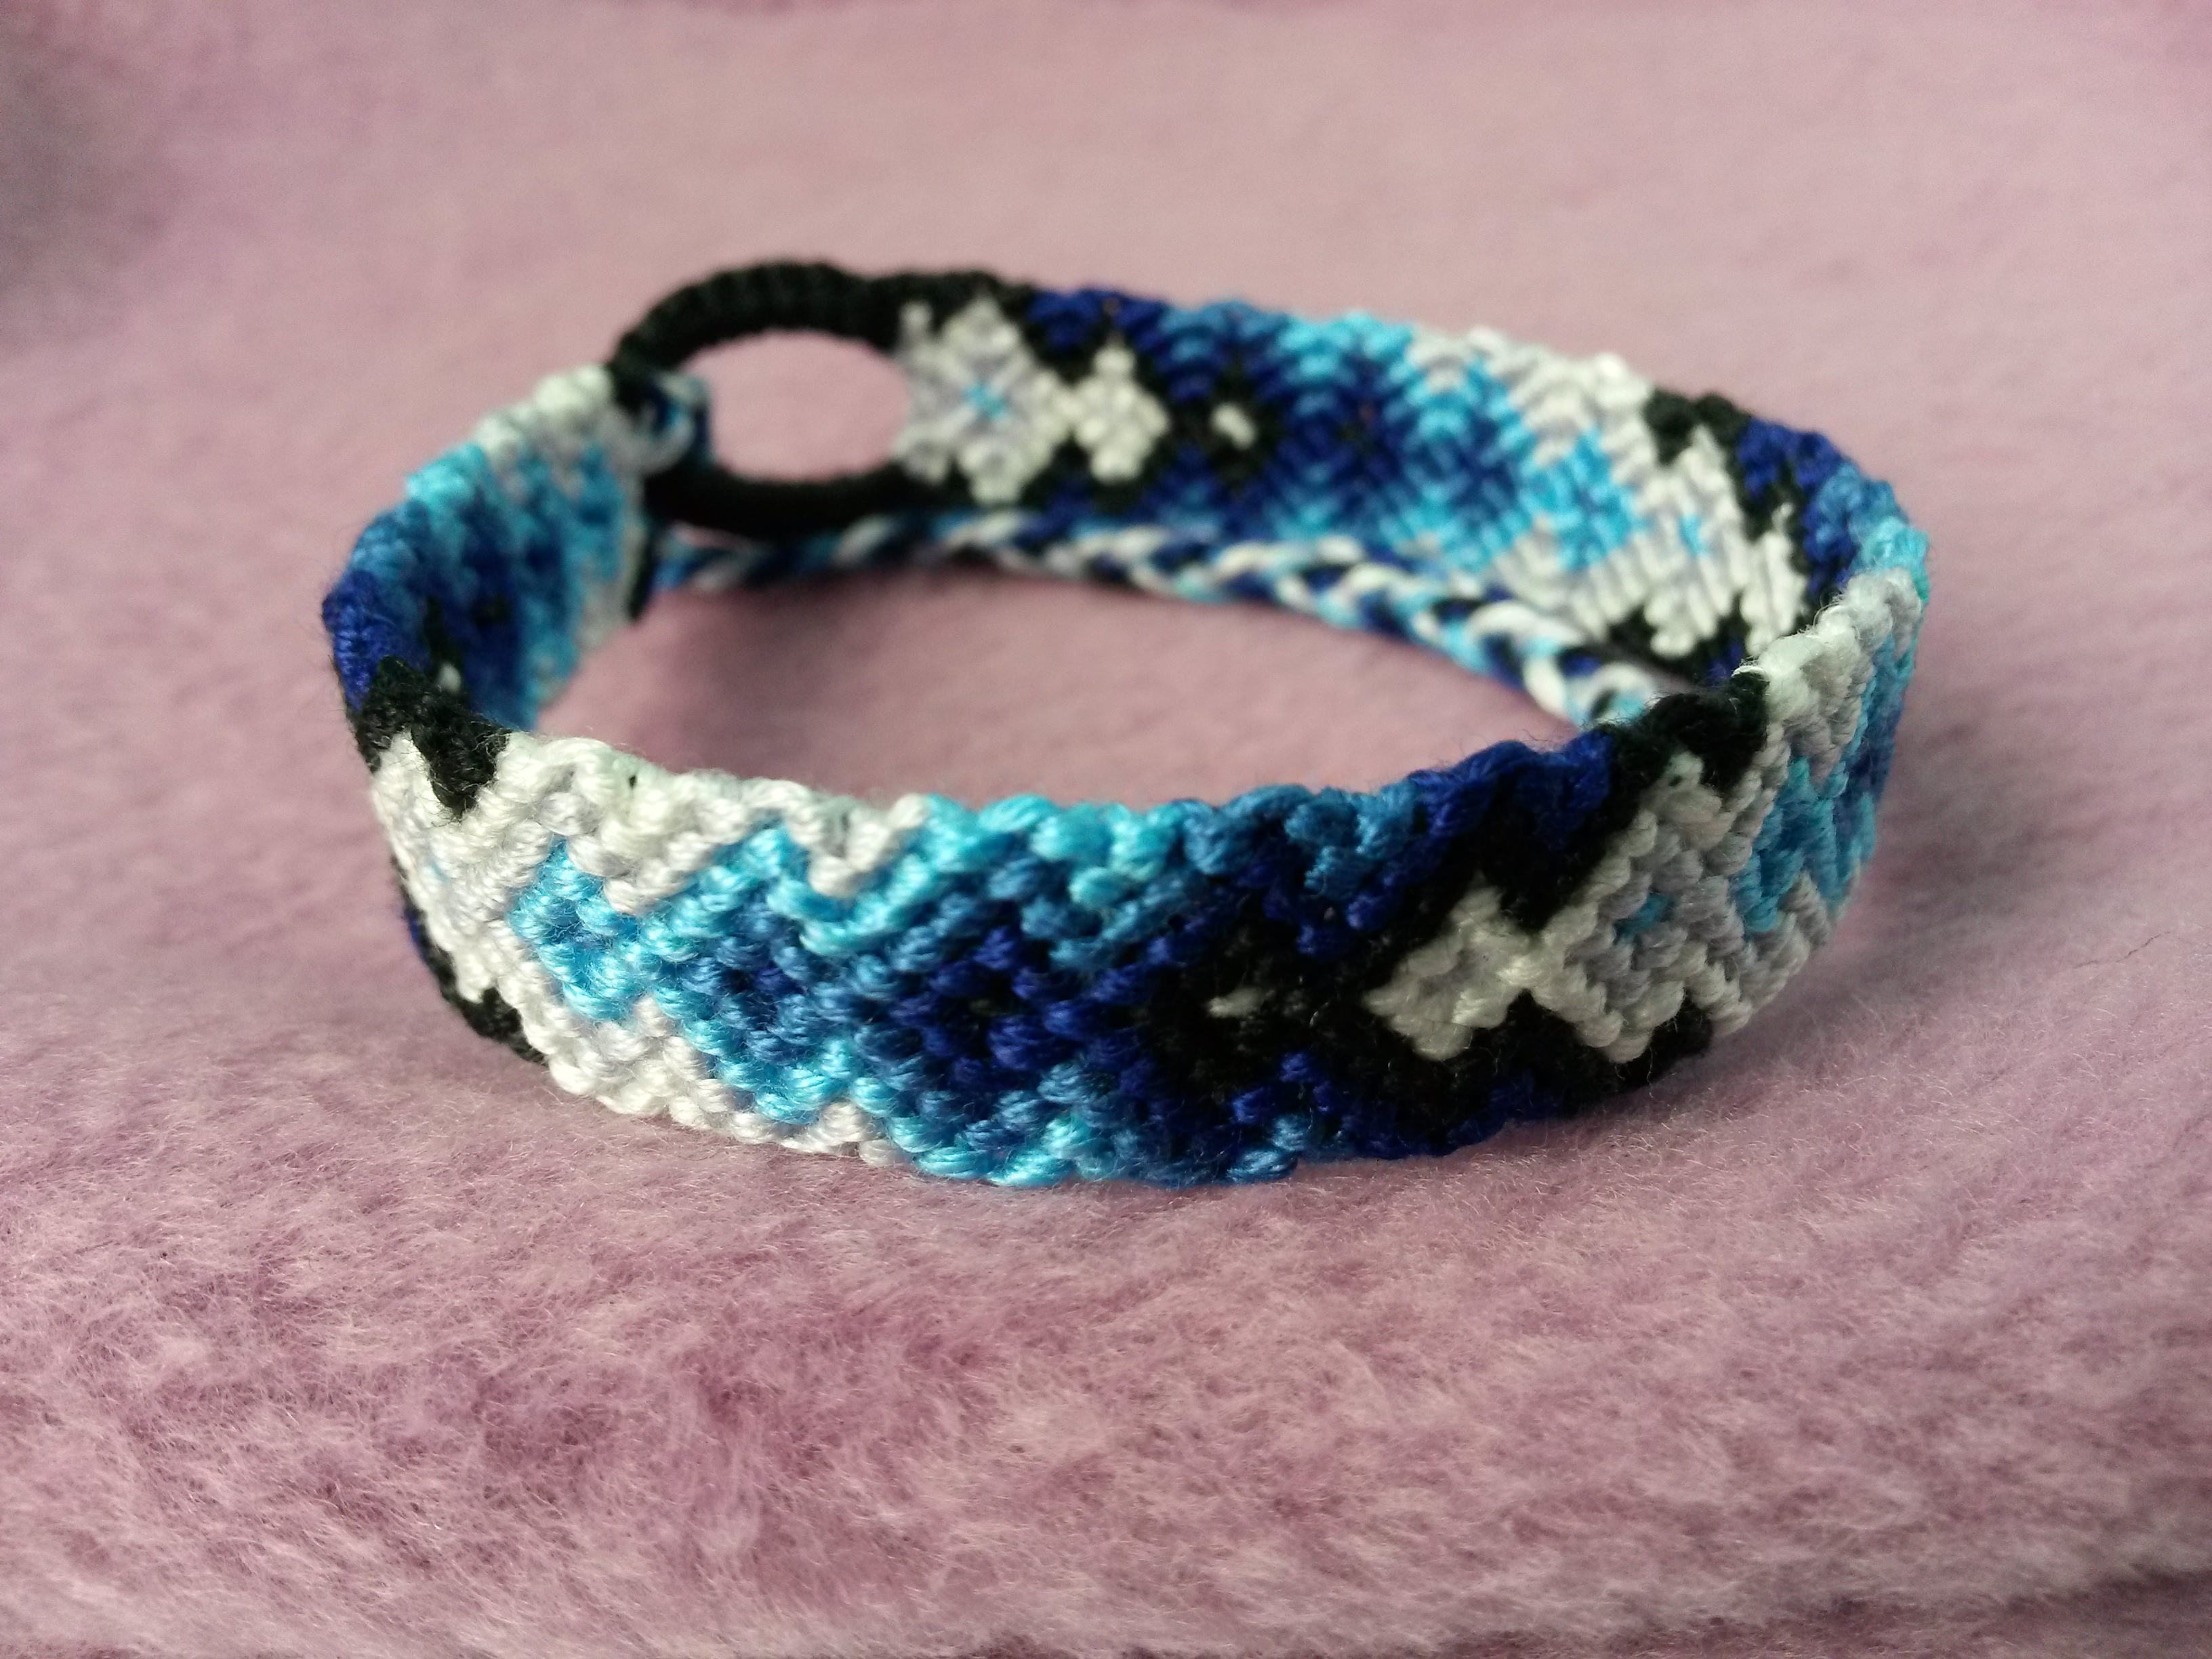 bracelets bracelet singapore kq blue pattern string from gradient friendship arrow blog patterns a handicrafter s craft anklet